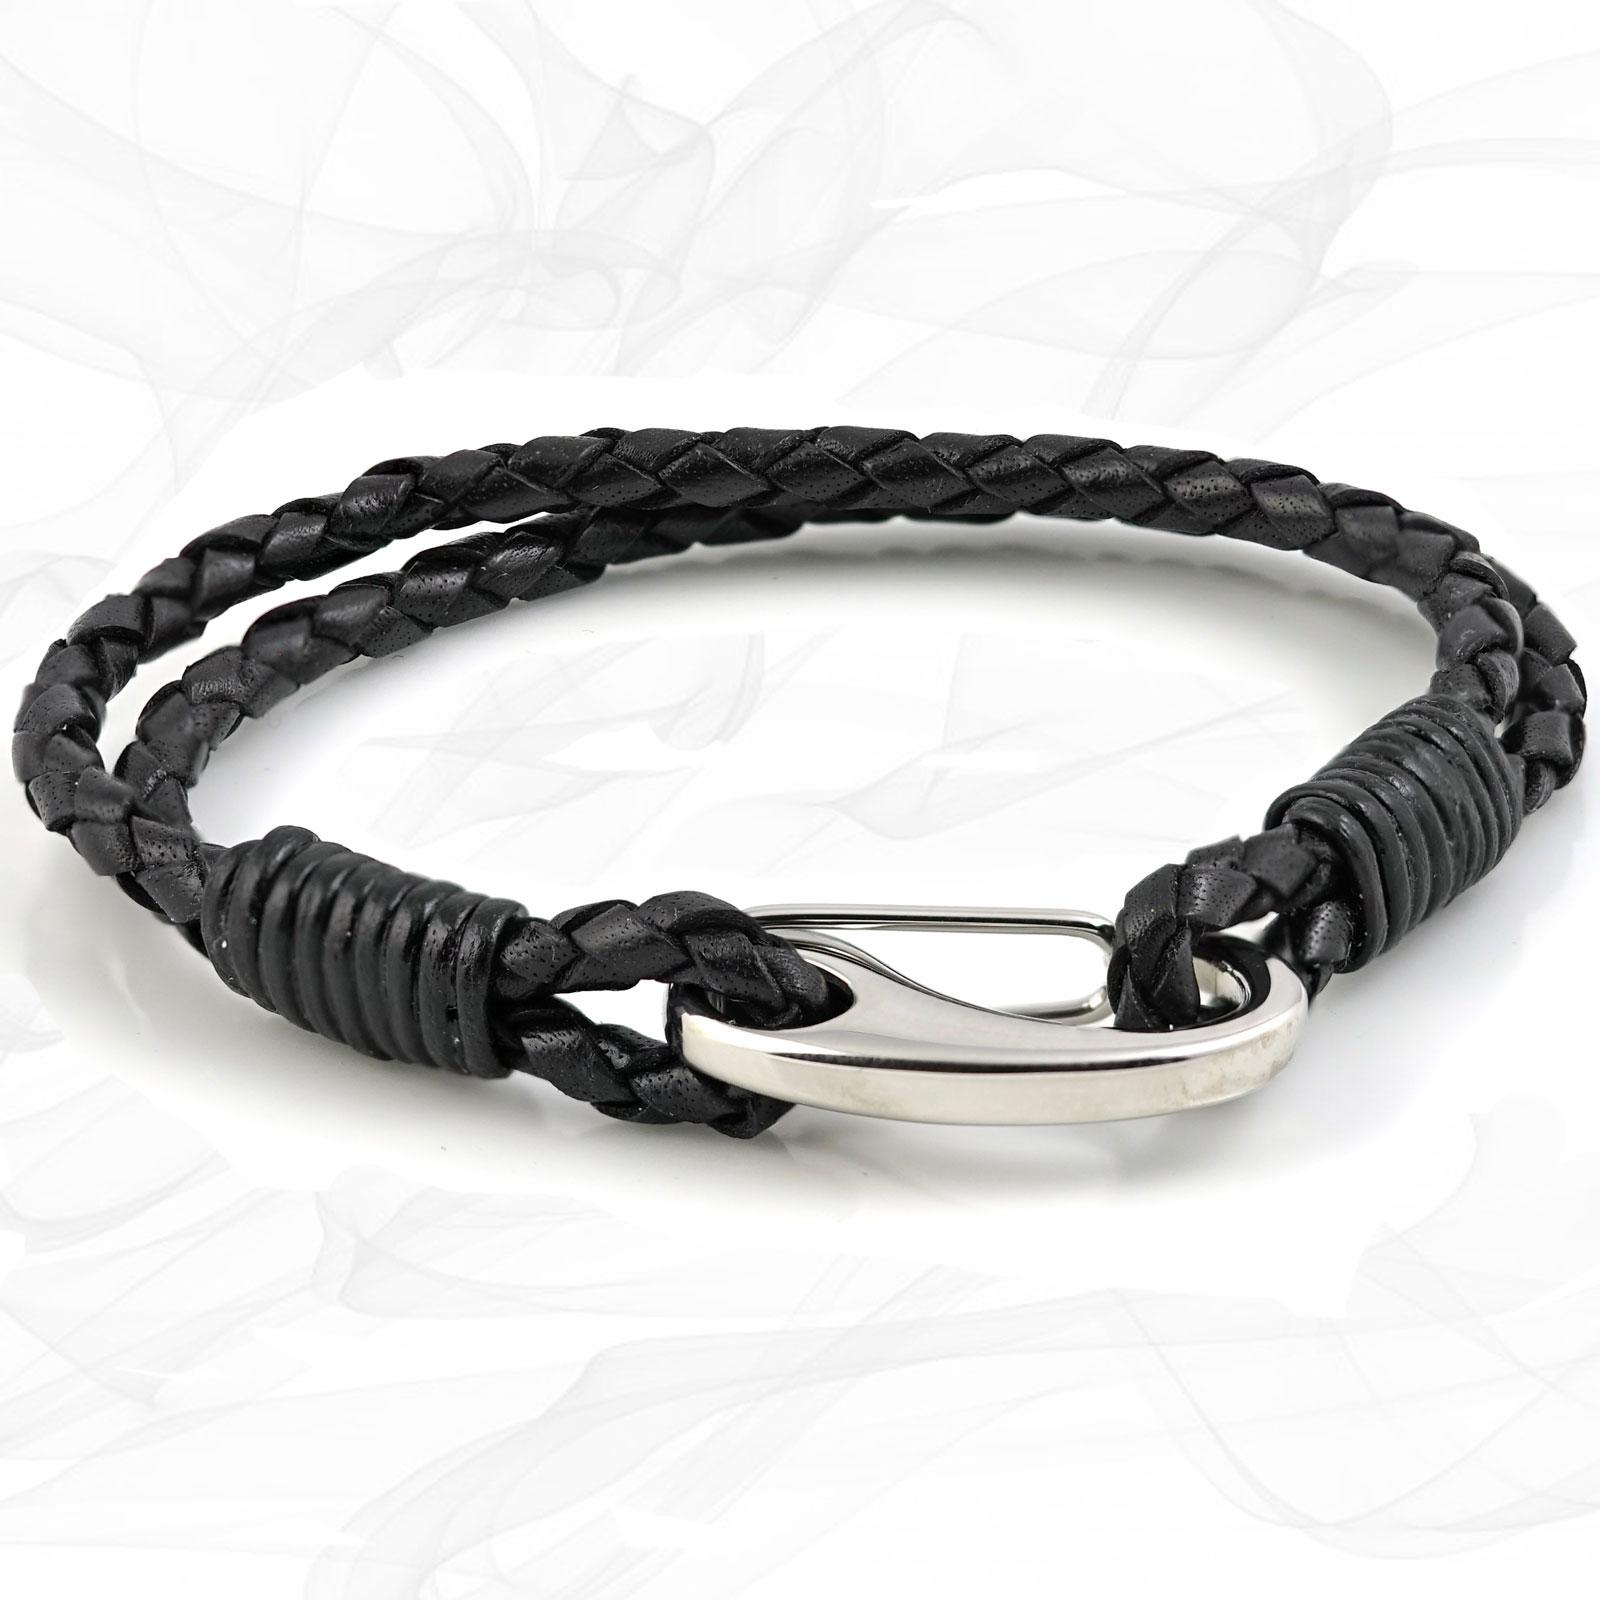 Black Double Wrap Bolo Leather Bracelet with Steel Lobster Clasp by Tribal Steel